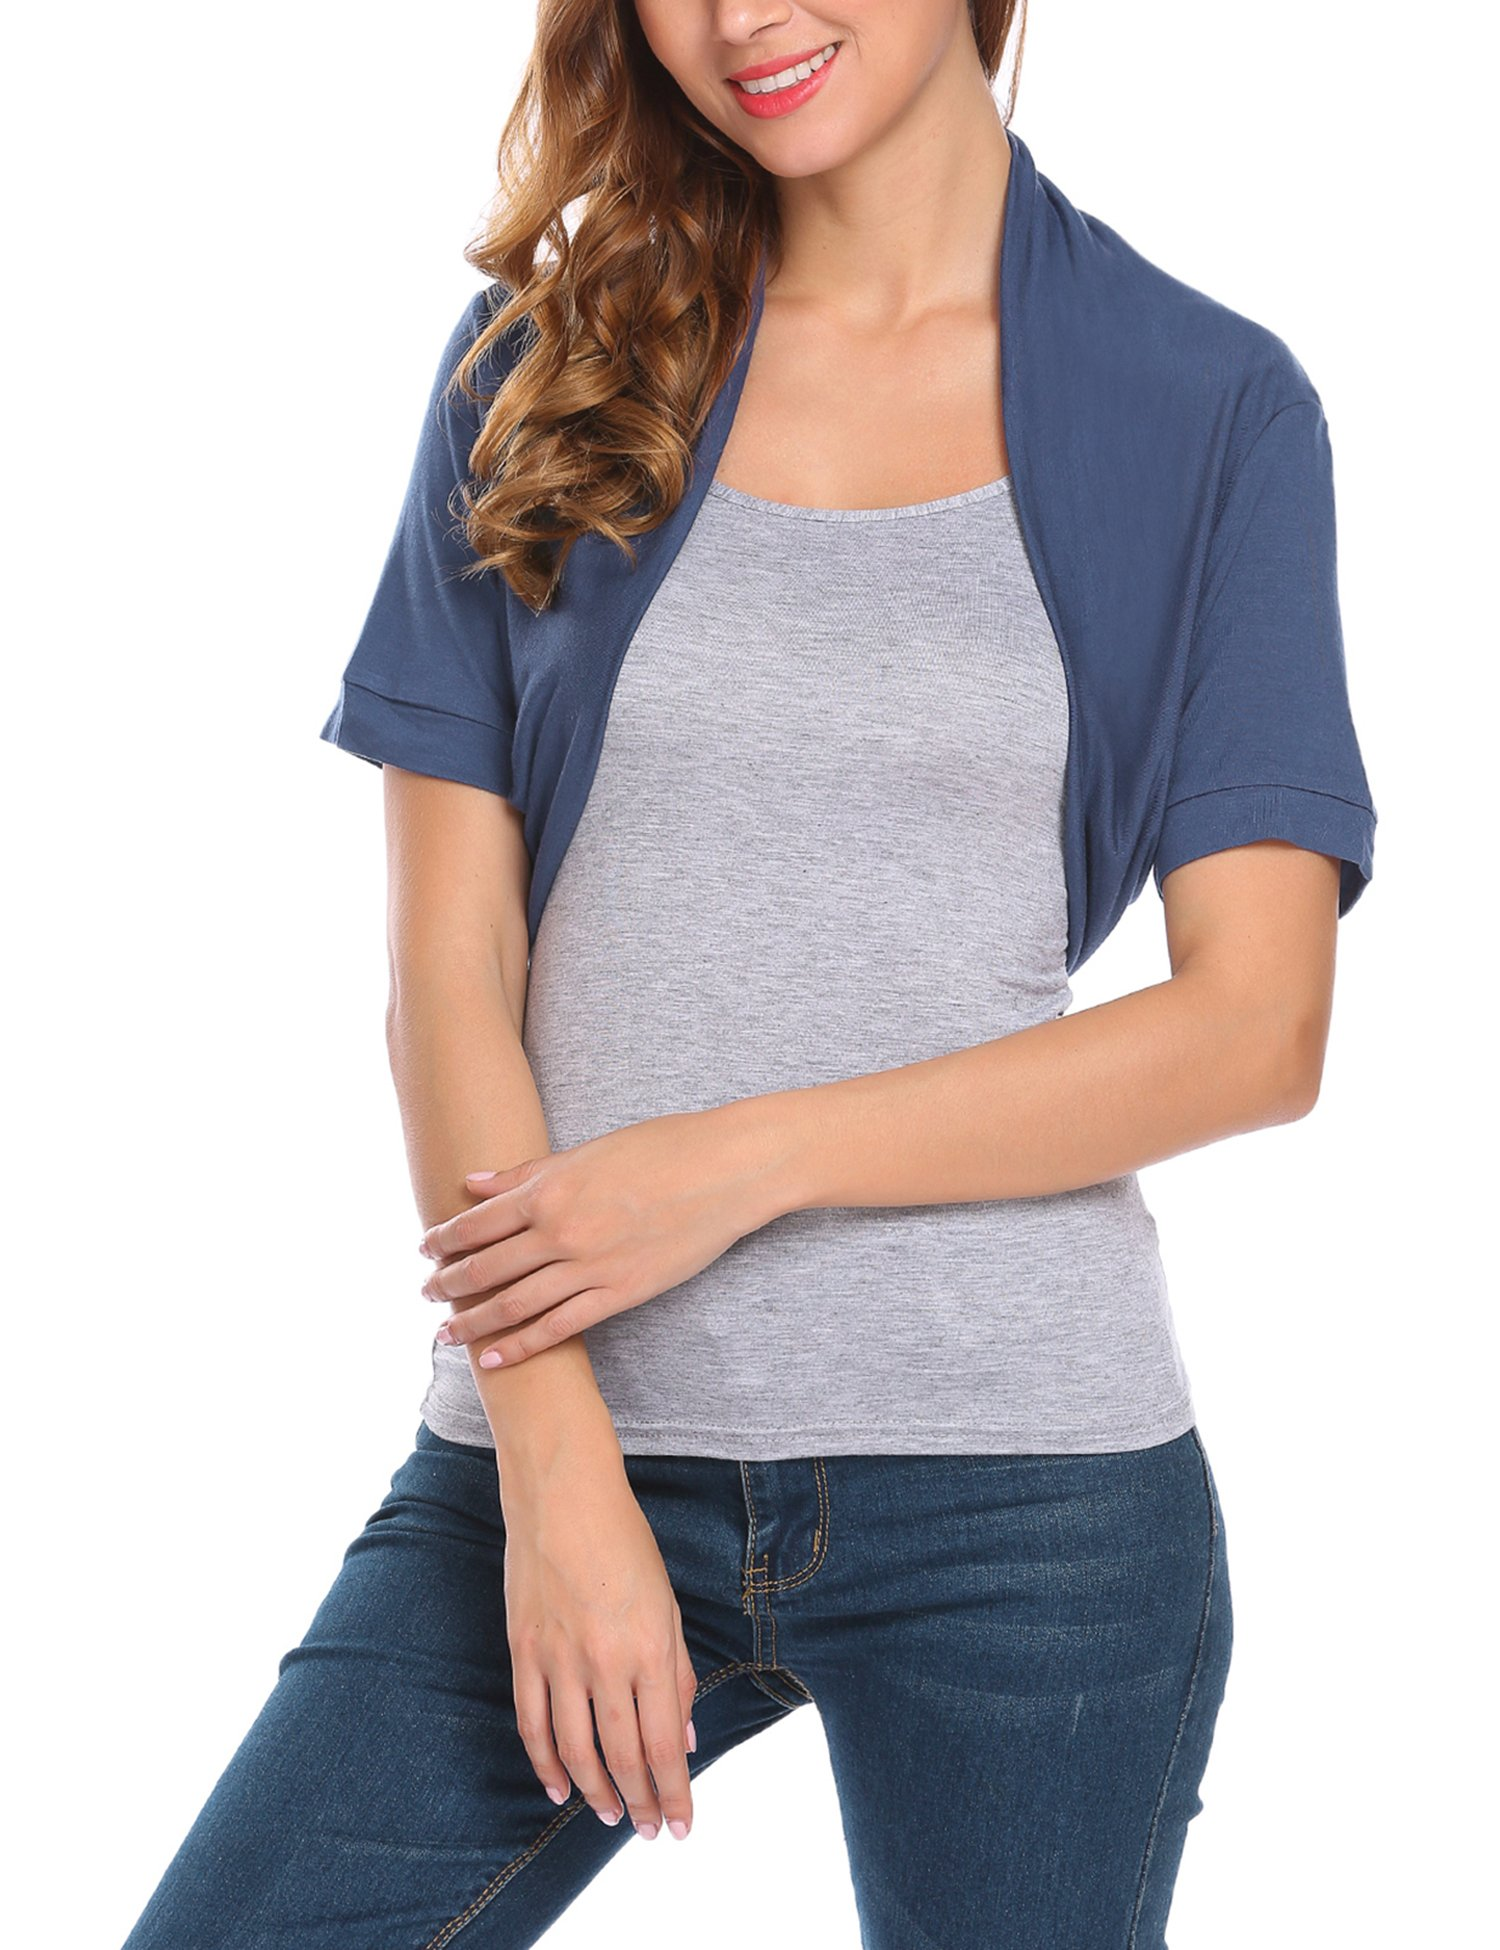 BEAUTYTALK Women's Short Sleeve Crop Top Lightweight Open Cardigan Bolero Shrug,Navy Blue,M